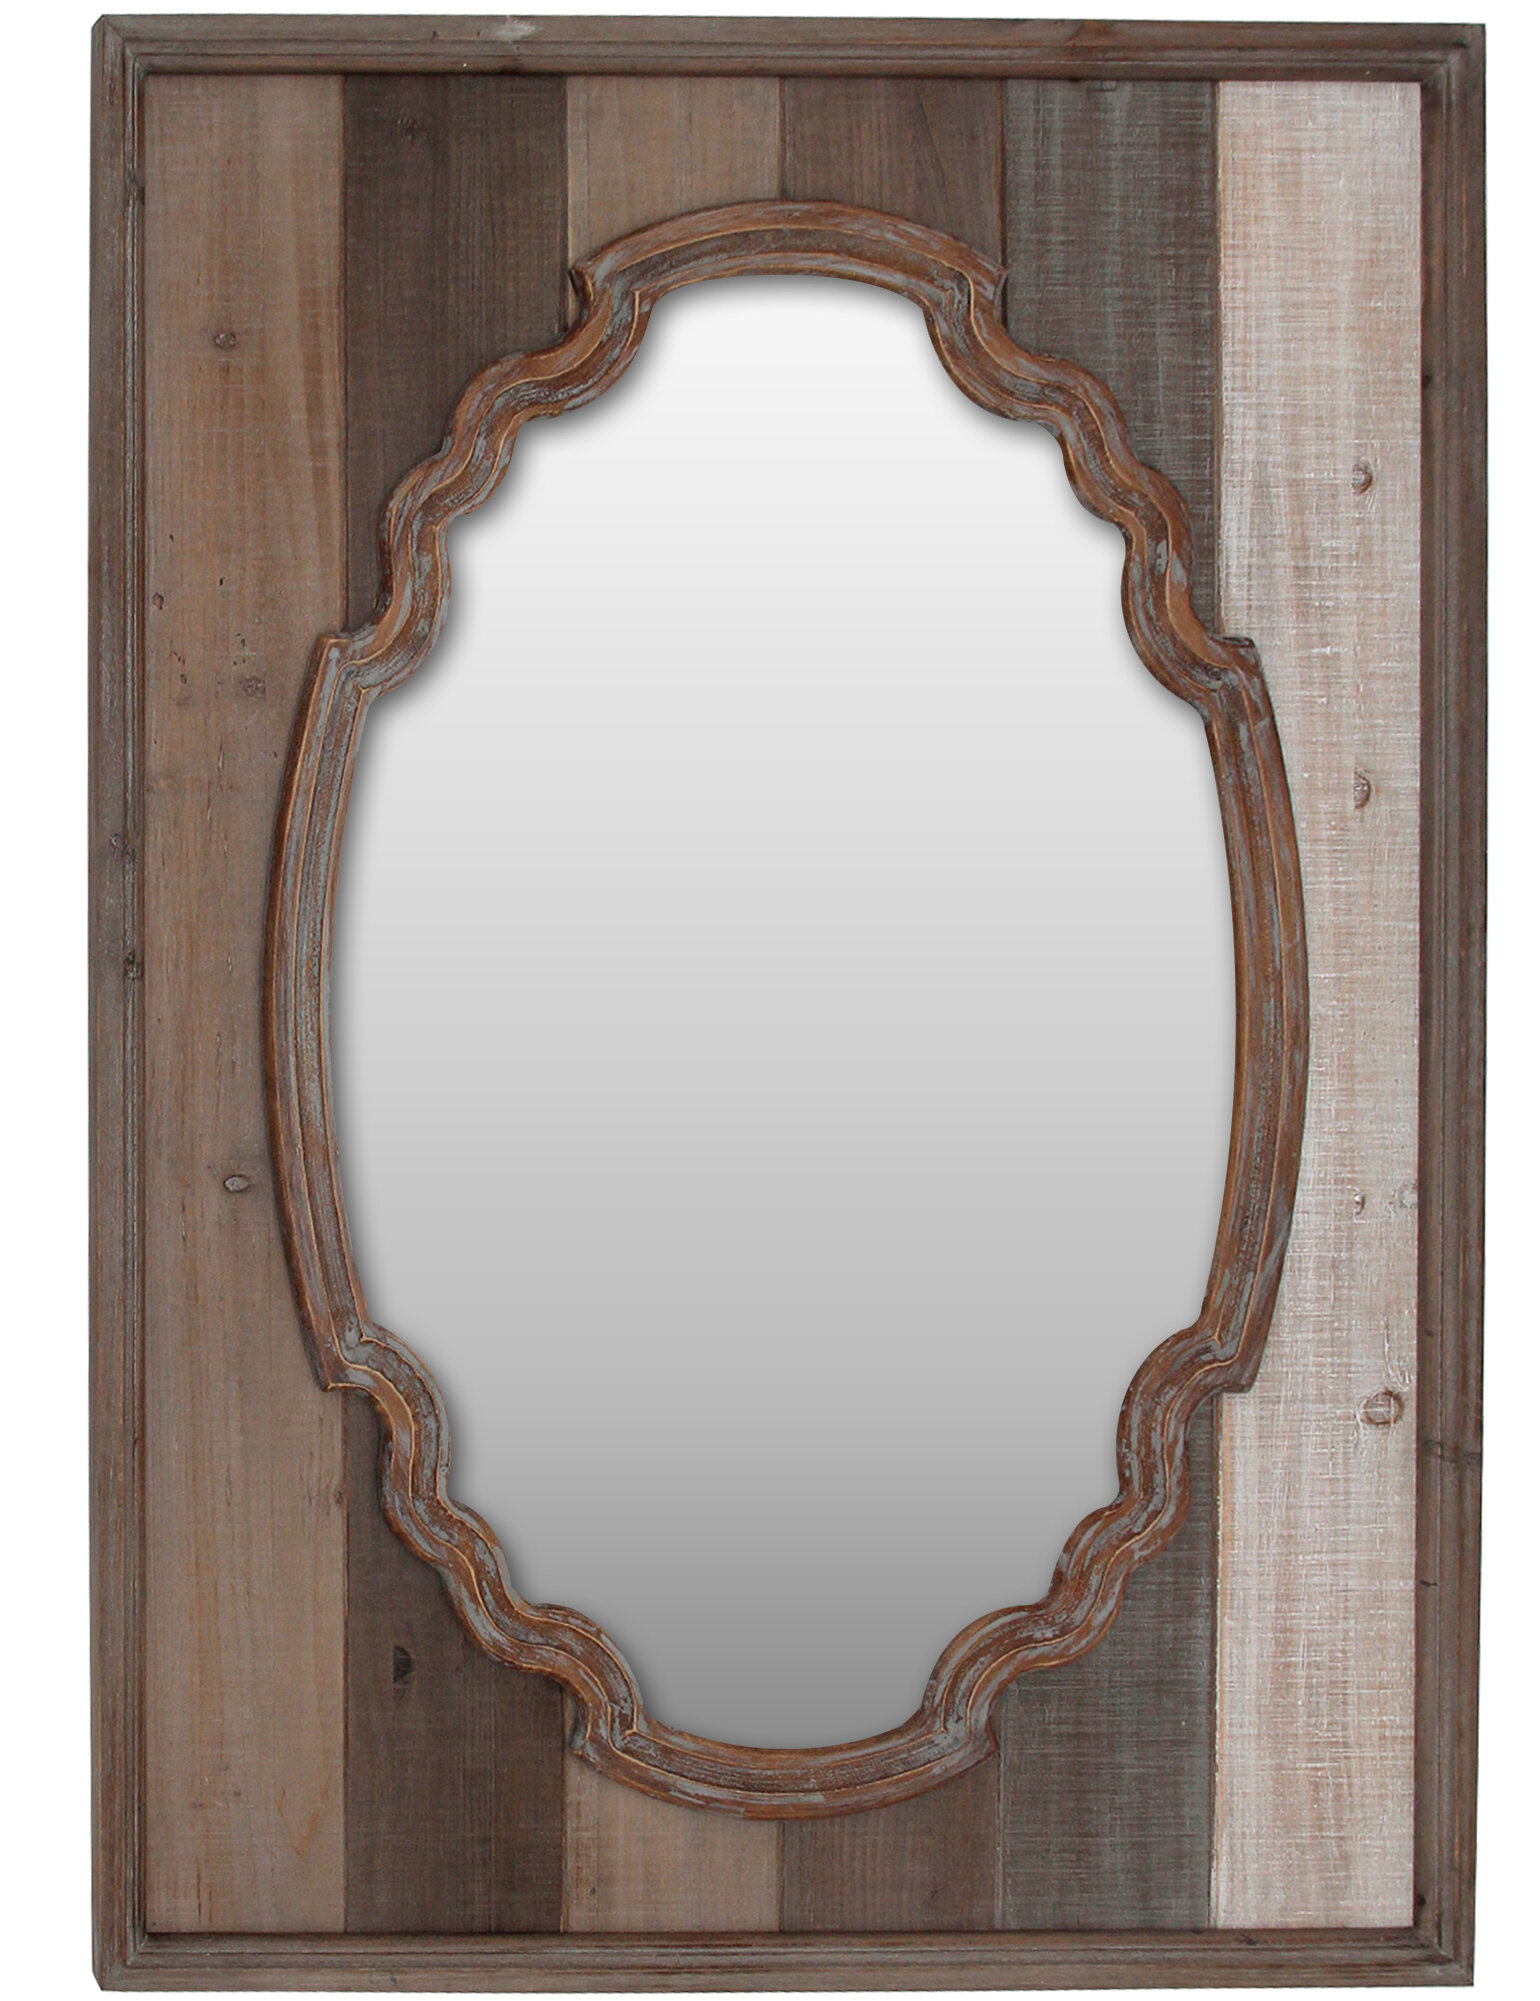 Jaylyn Elegant Farmstead Rustic Accent Mirror within Peetz Modern Rustic Accent Mirrors (Image 16 of 30)